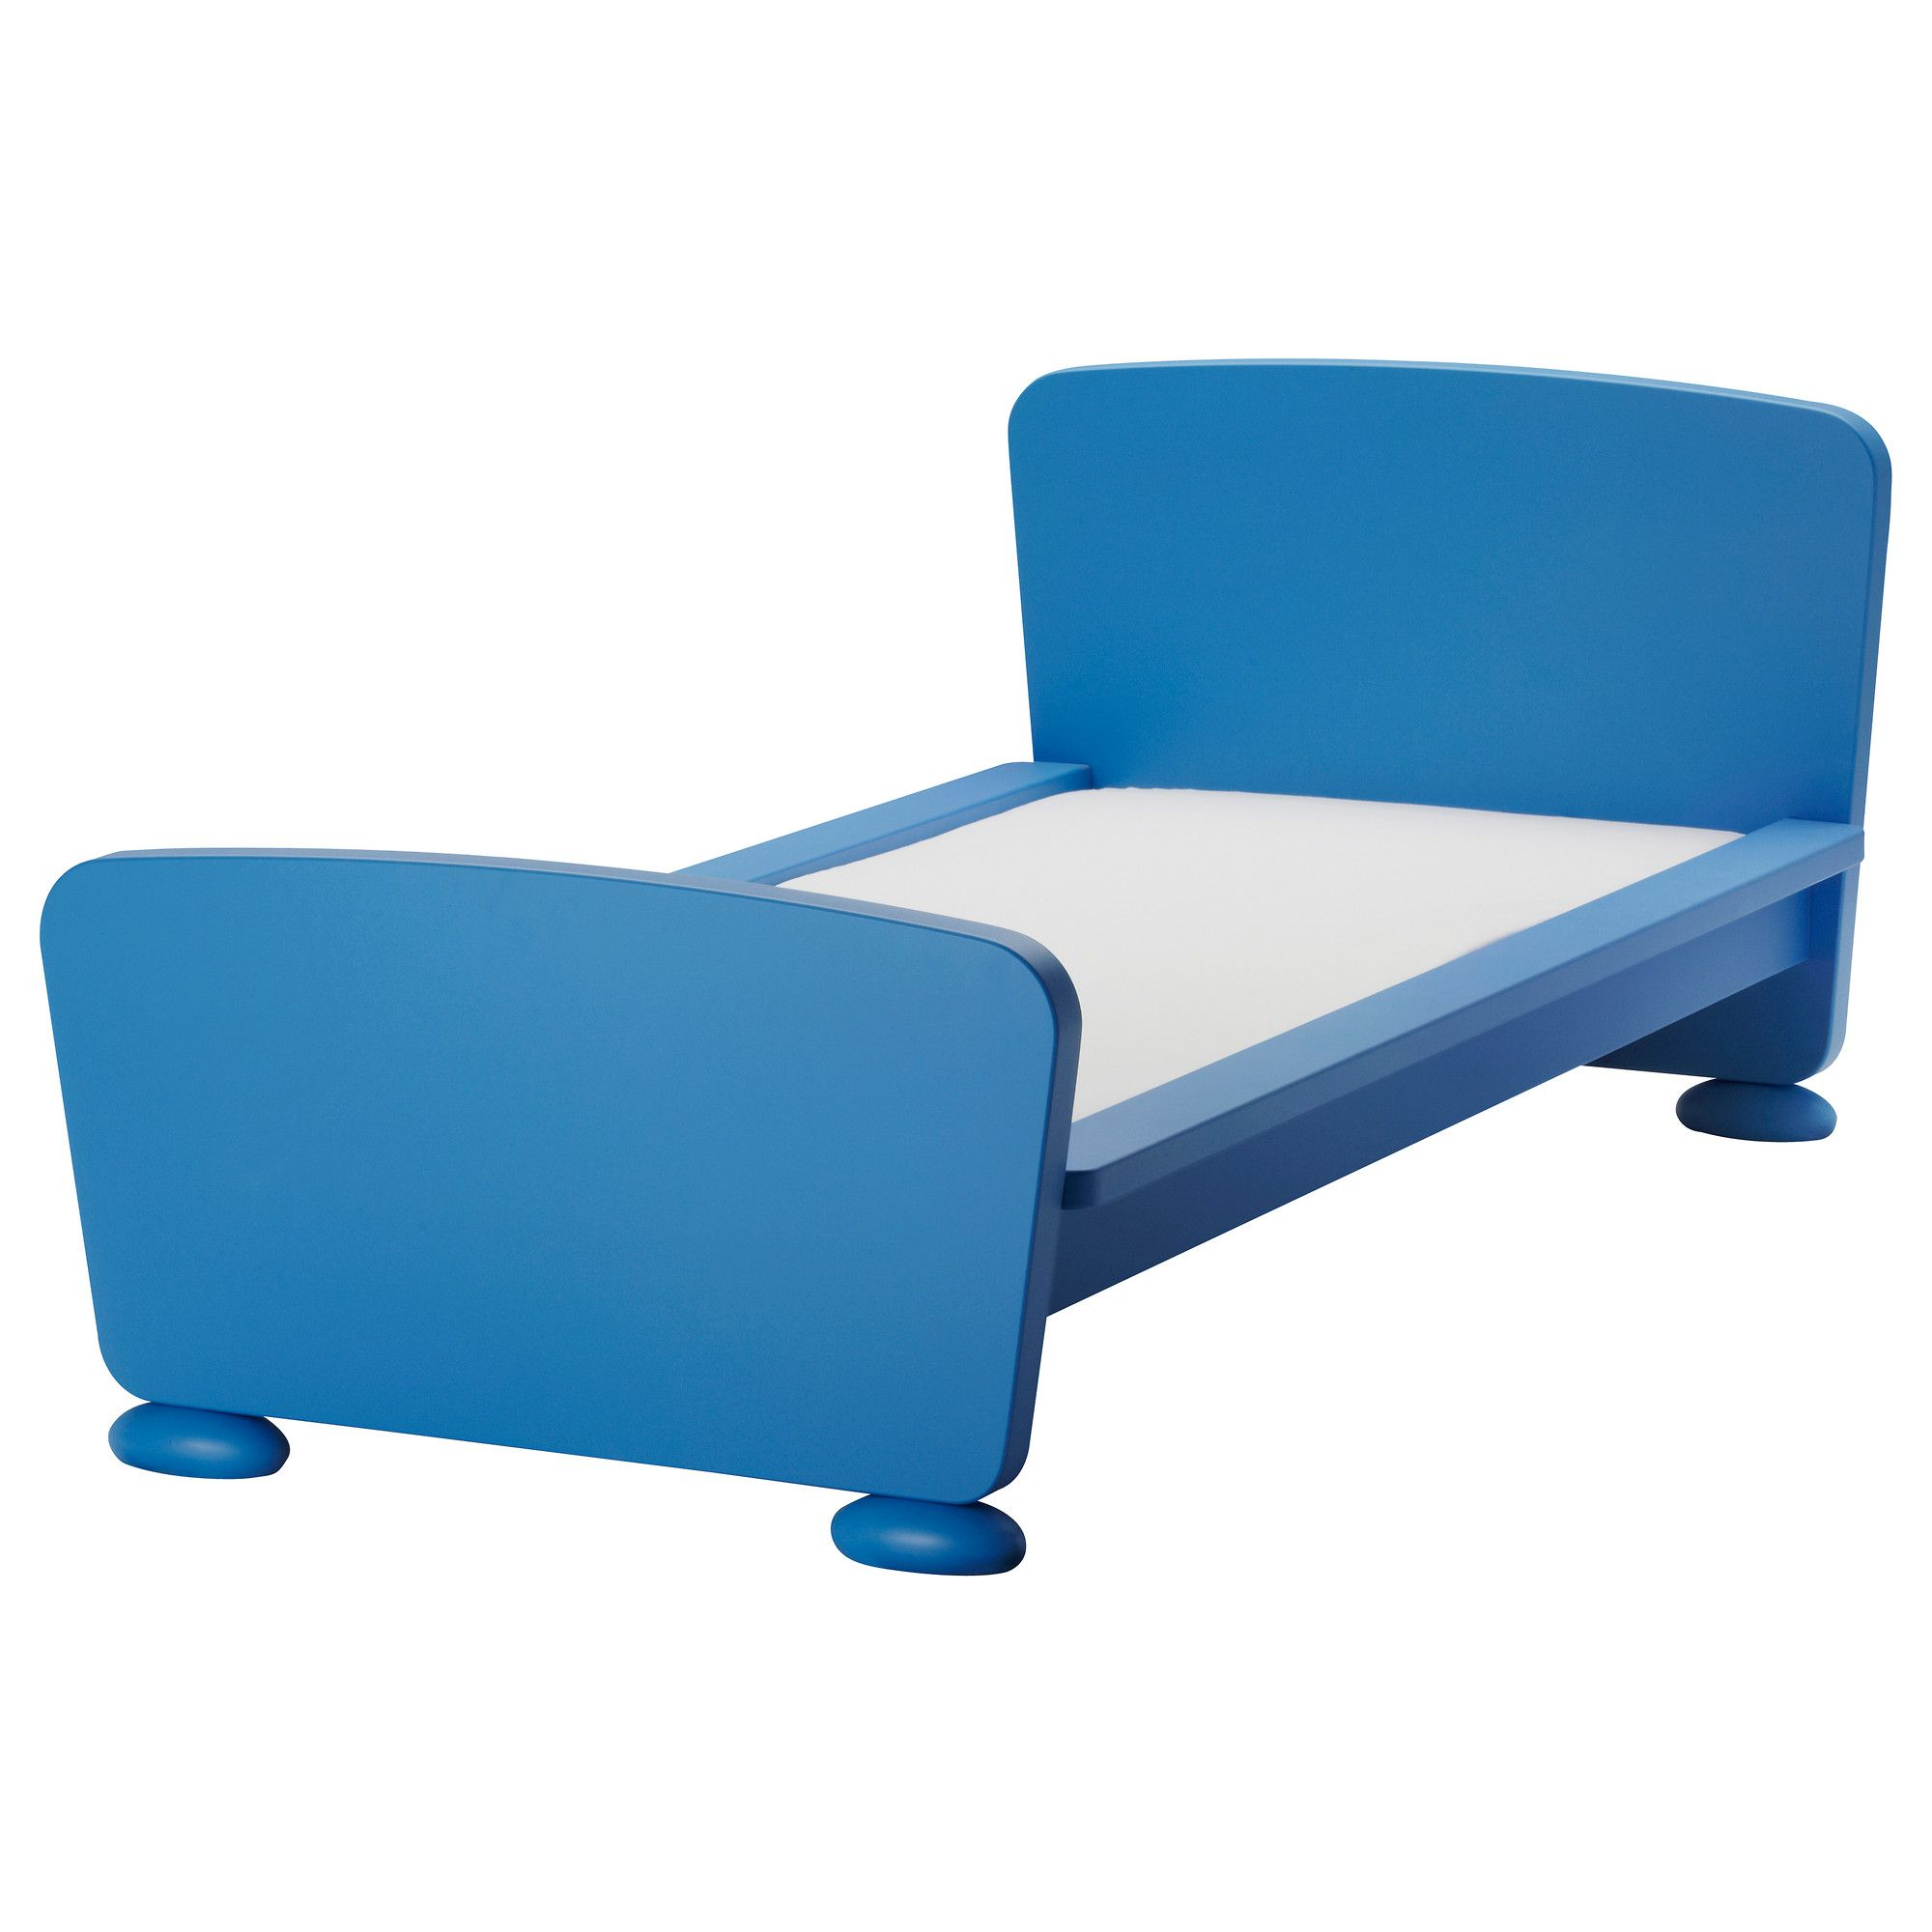 would it be terrible to this brand new bed and then paint it a